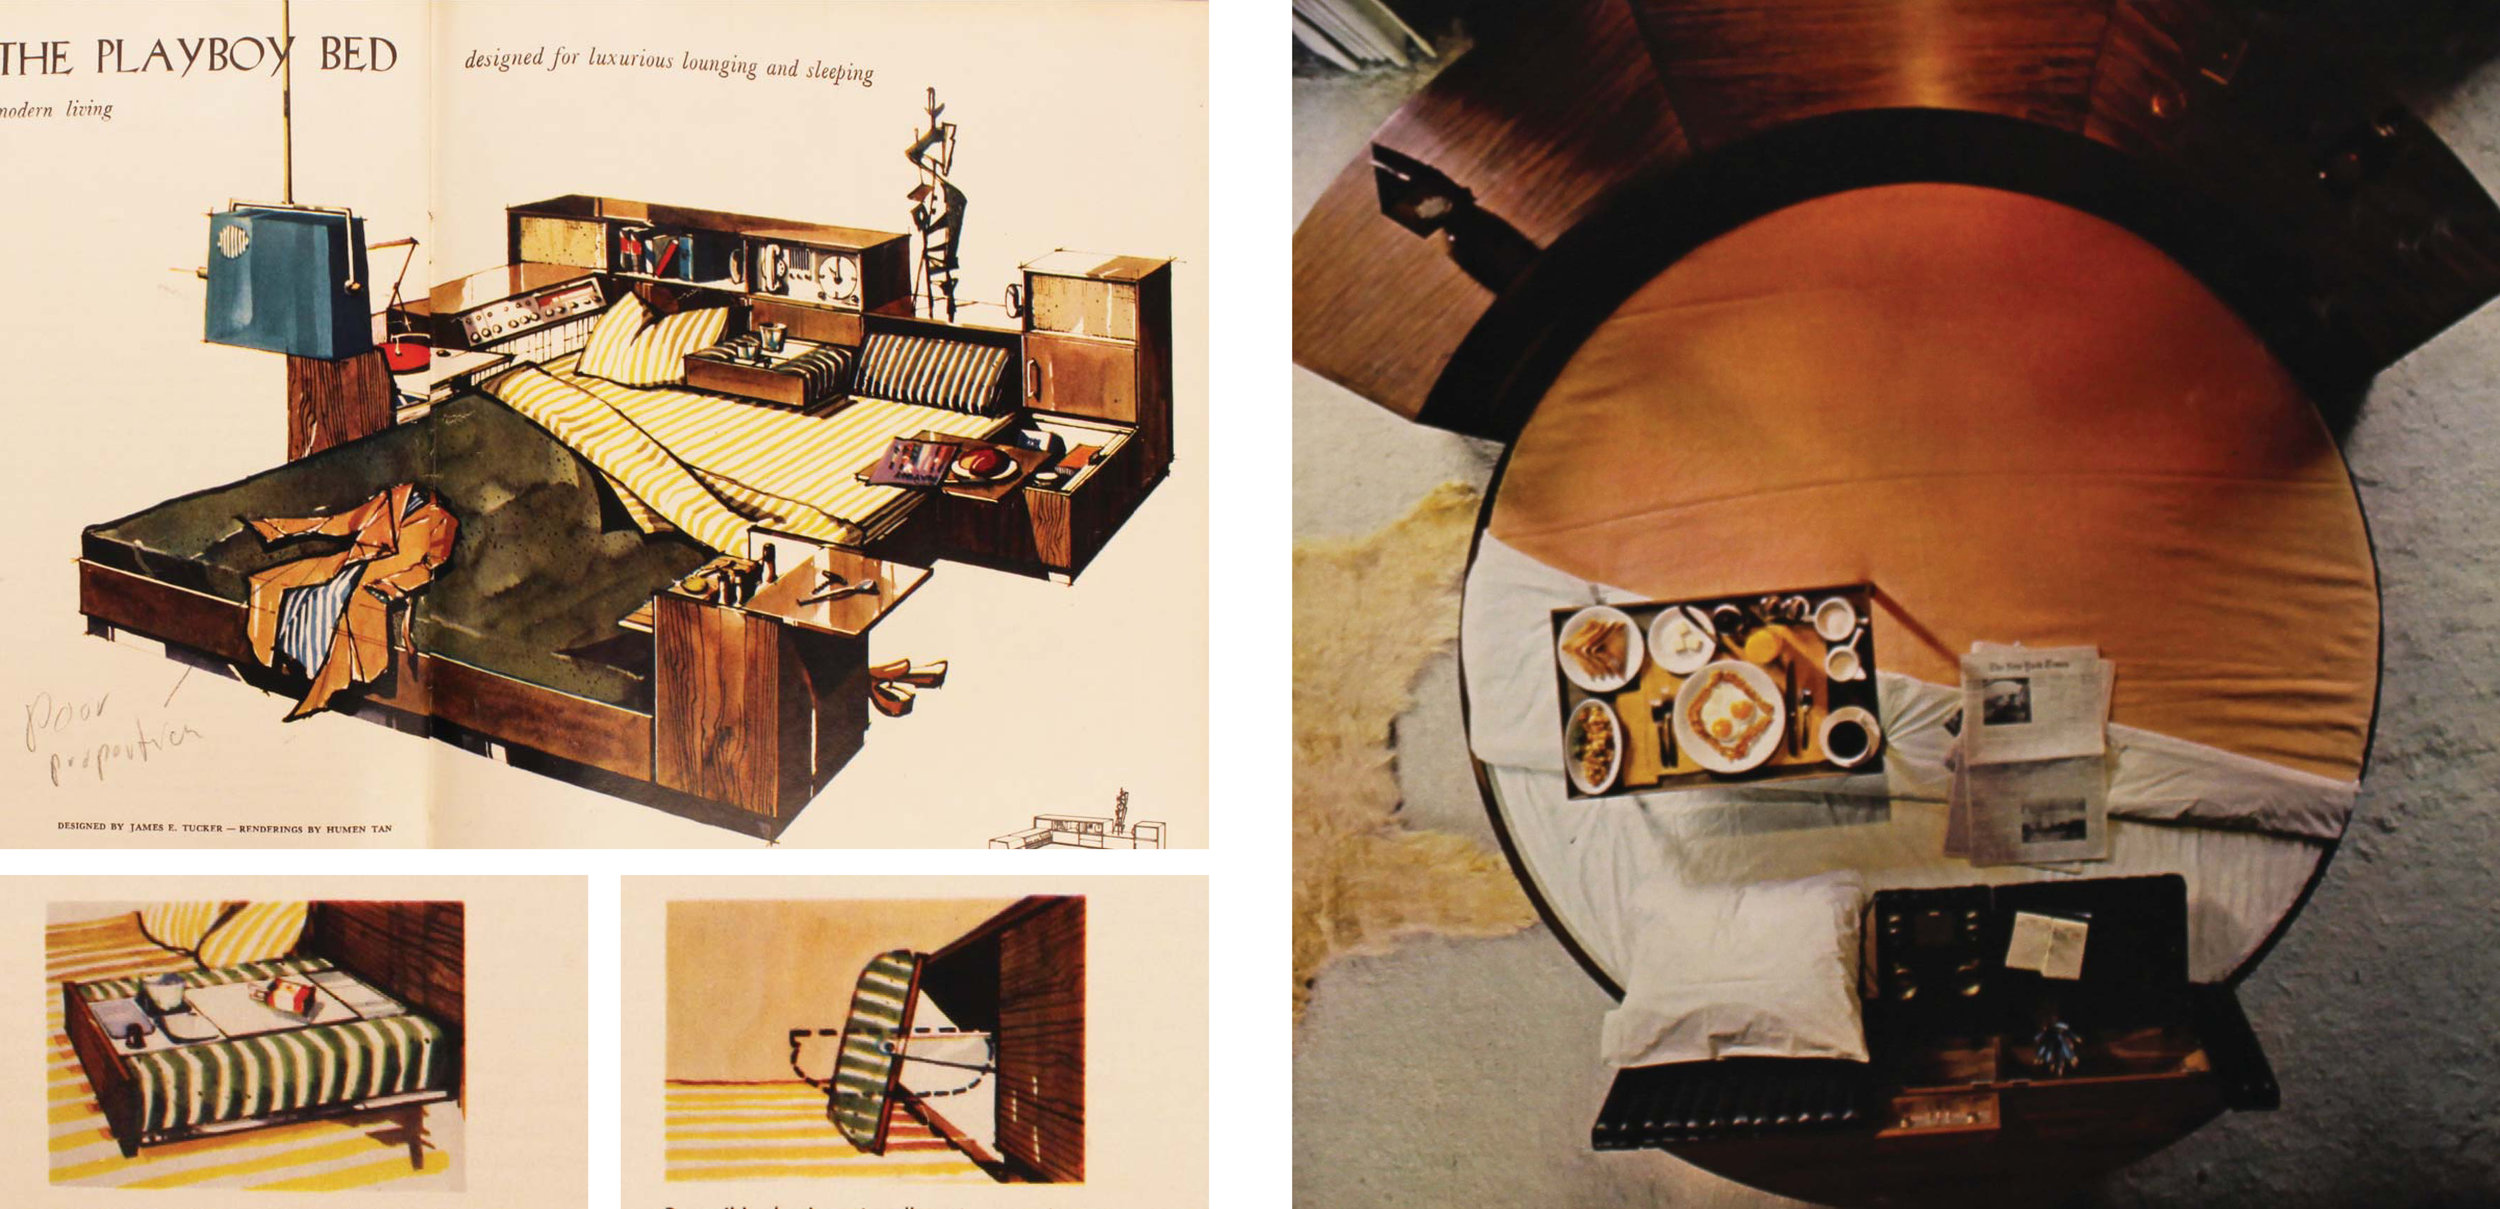 Figure 3:  Designs for the Playboy Bed:  The Playboy Bed, November 1959 ;  The Playboy Bed, April 1965 .  The removal of domestic culinary space is further emphasized by the centralization of the bachelor pad around the bedroom.  Playboy  transforms the sleeping space into a technological and sexual hub where the bachelor exhibits dominance over his abode and his late-night companions. Two designs for a bed are filled with gadgets and control panels allowing the playboy to  flick ,  touch ,  rub ,  throw , or  push  his way to satisfaction: sound and lighting systems are easily reached, food storage and serving areas are copiously built in, and the round bed even rotates to match the playboy's preferred view. The highly-engineered qualities of the beds realize the fantasies of the male agoraphobe and reduce the spatial requirements of feminized programs down to toys that can be played with.